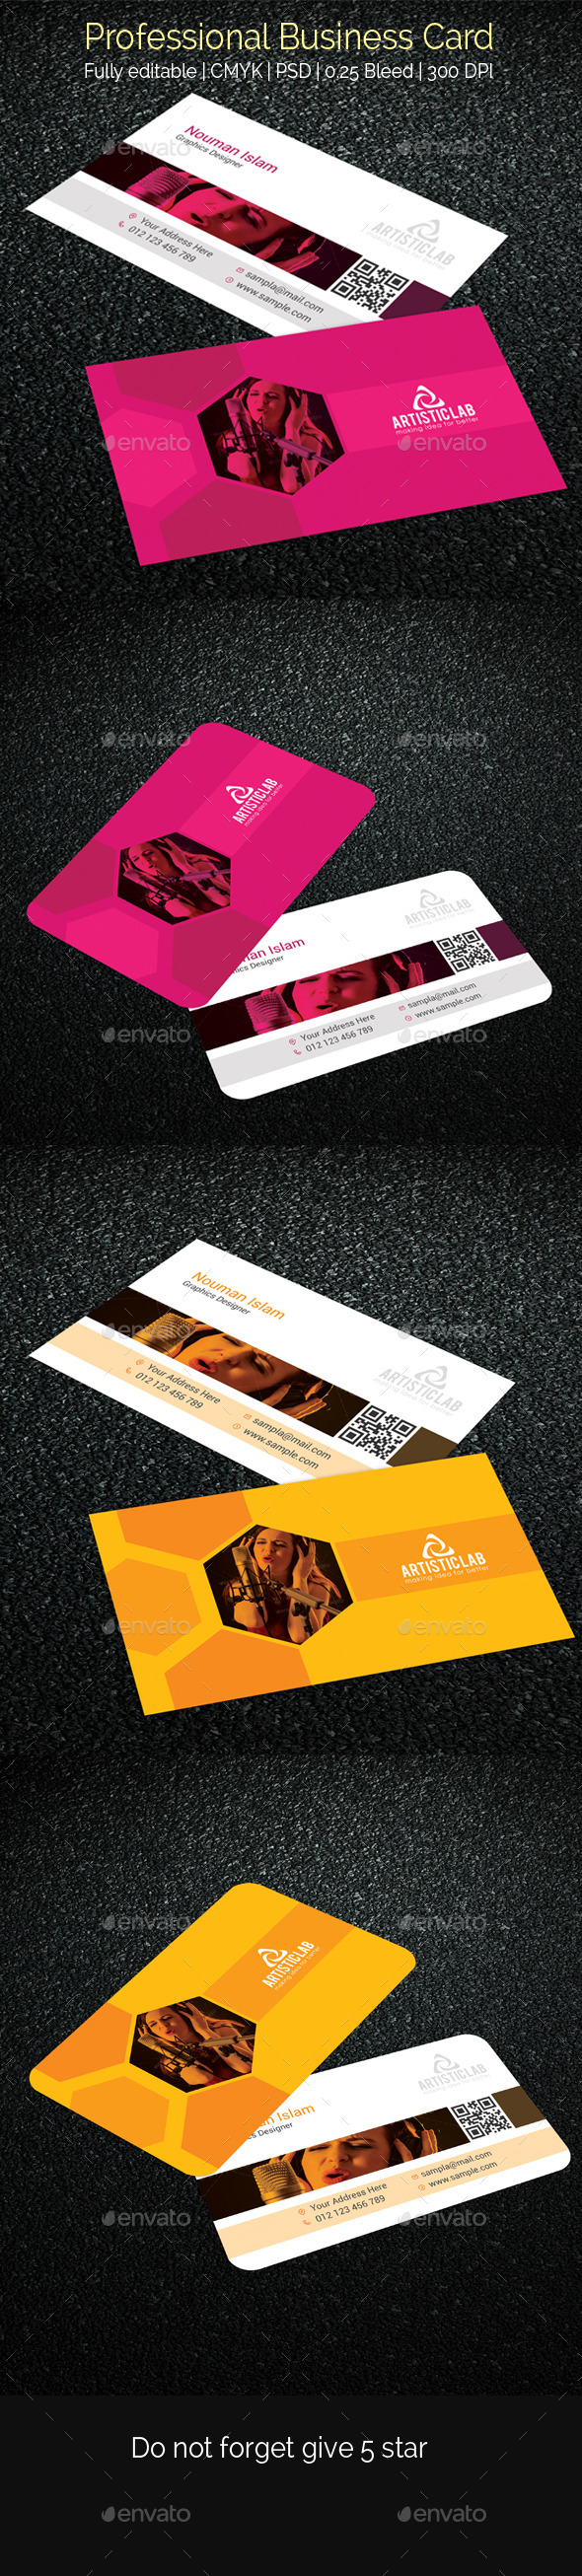 GraphicRiver Professional Business Card 10833713